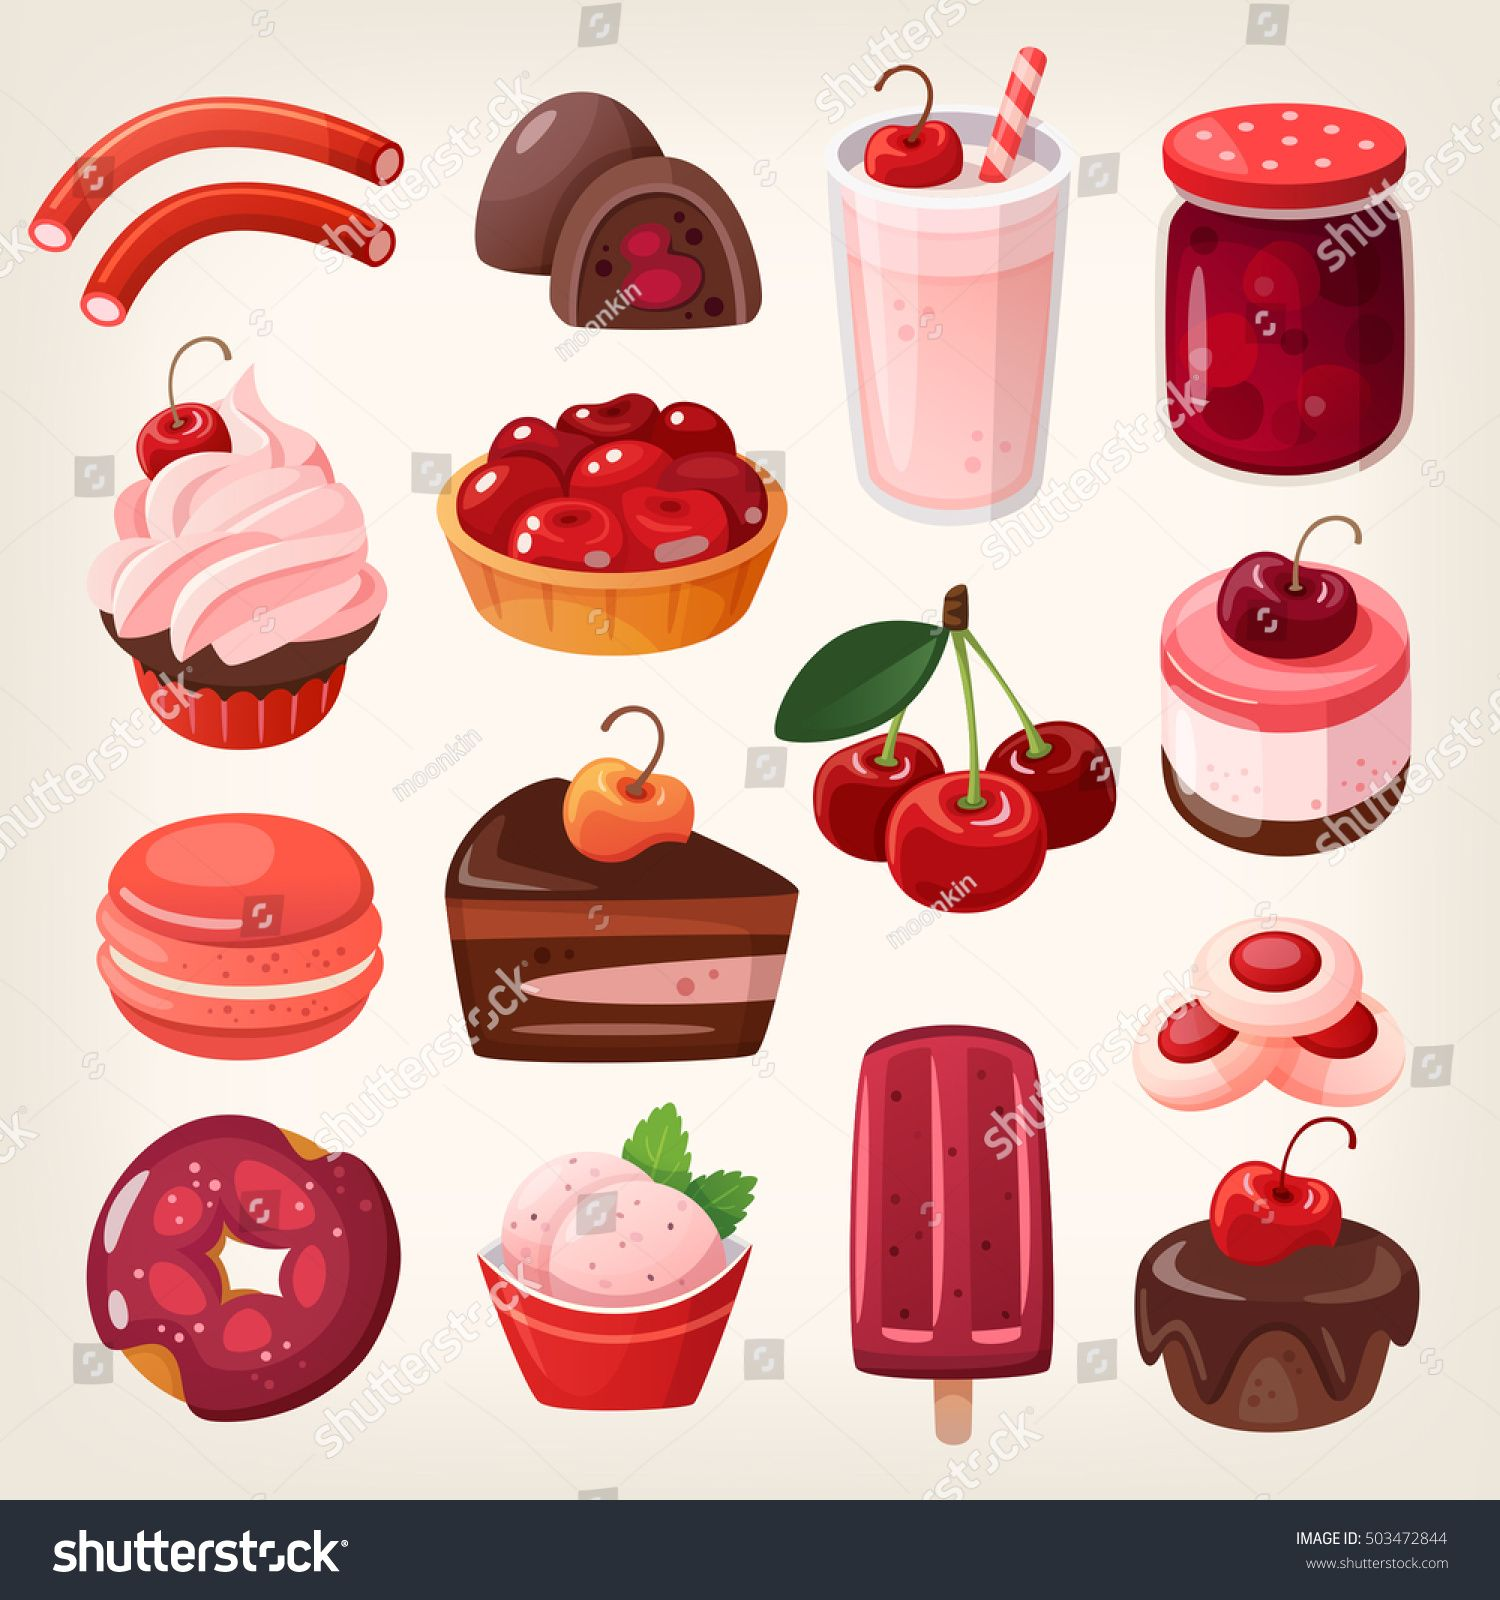 Set of delicious fruit sweets and desserts. Cherry